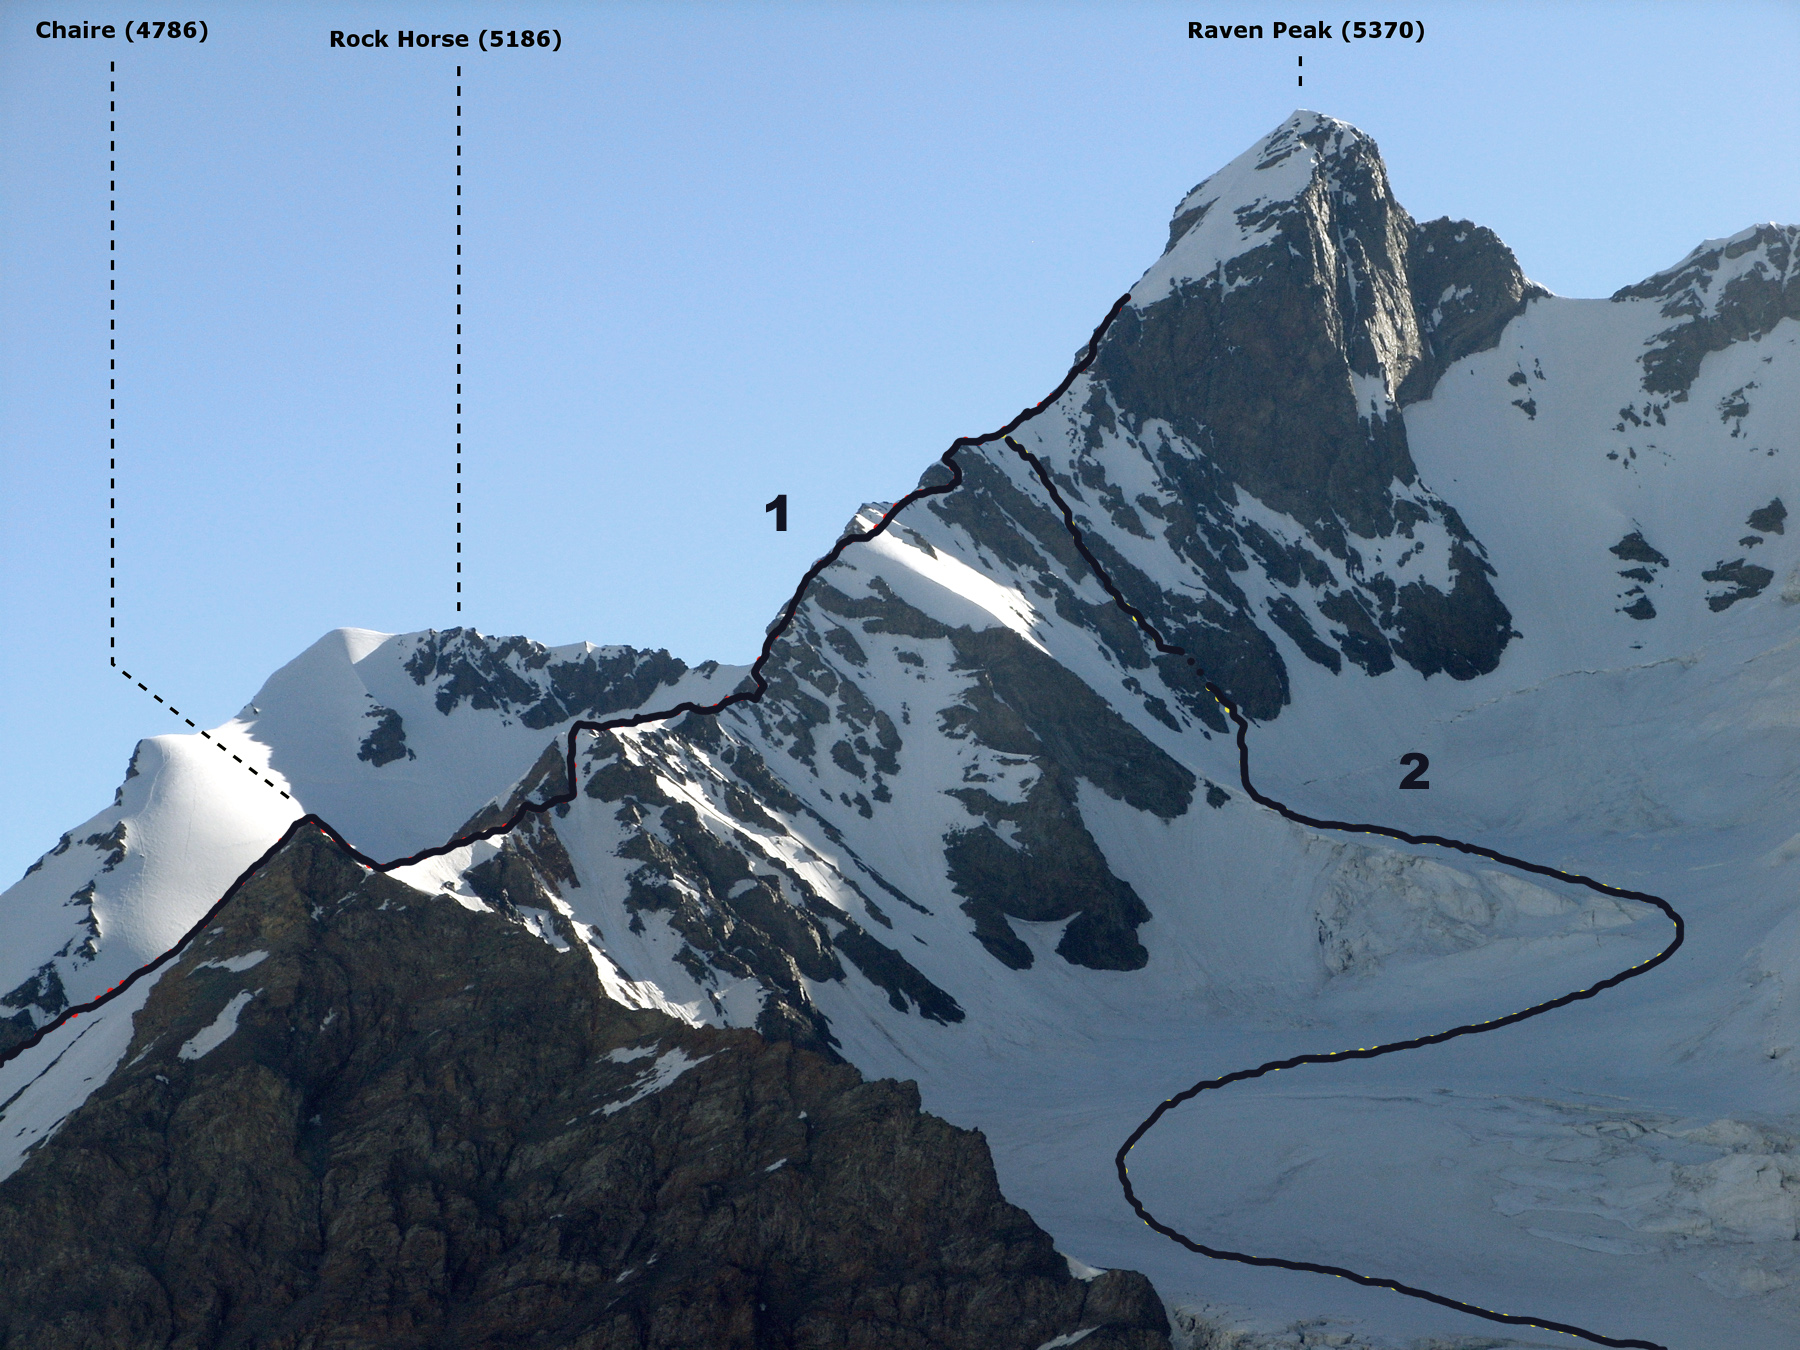 Raven Peak from southwest with (1) attempted route on west ridge, and (2) descent.